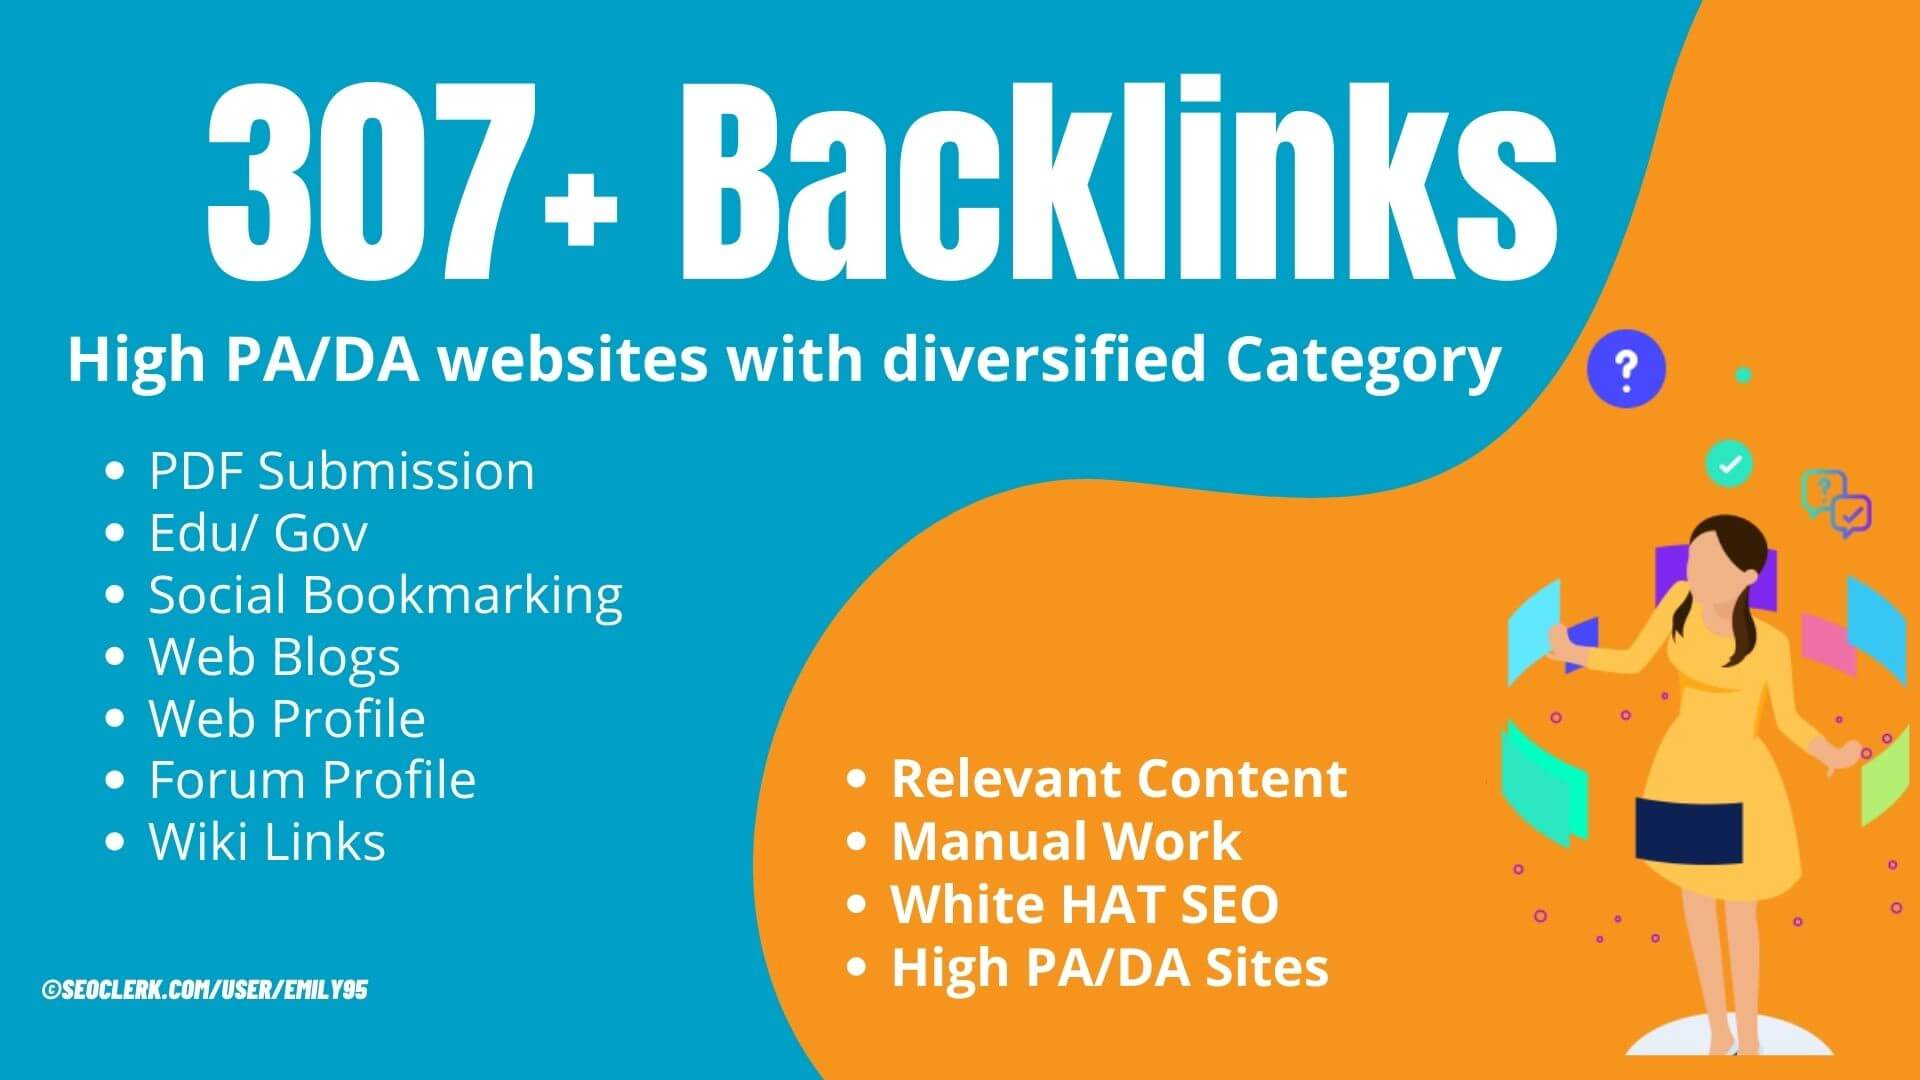 307+ Google & Moz friendly Linking domain from diversified category to increase domain Authority